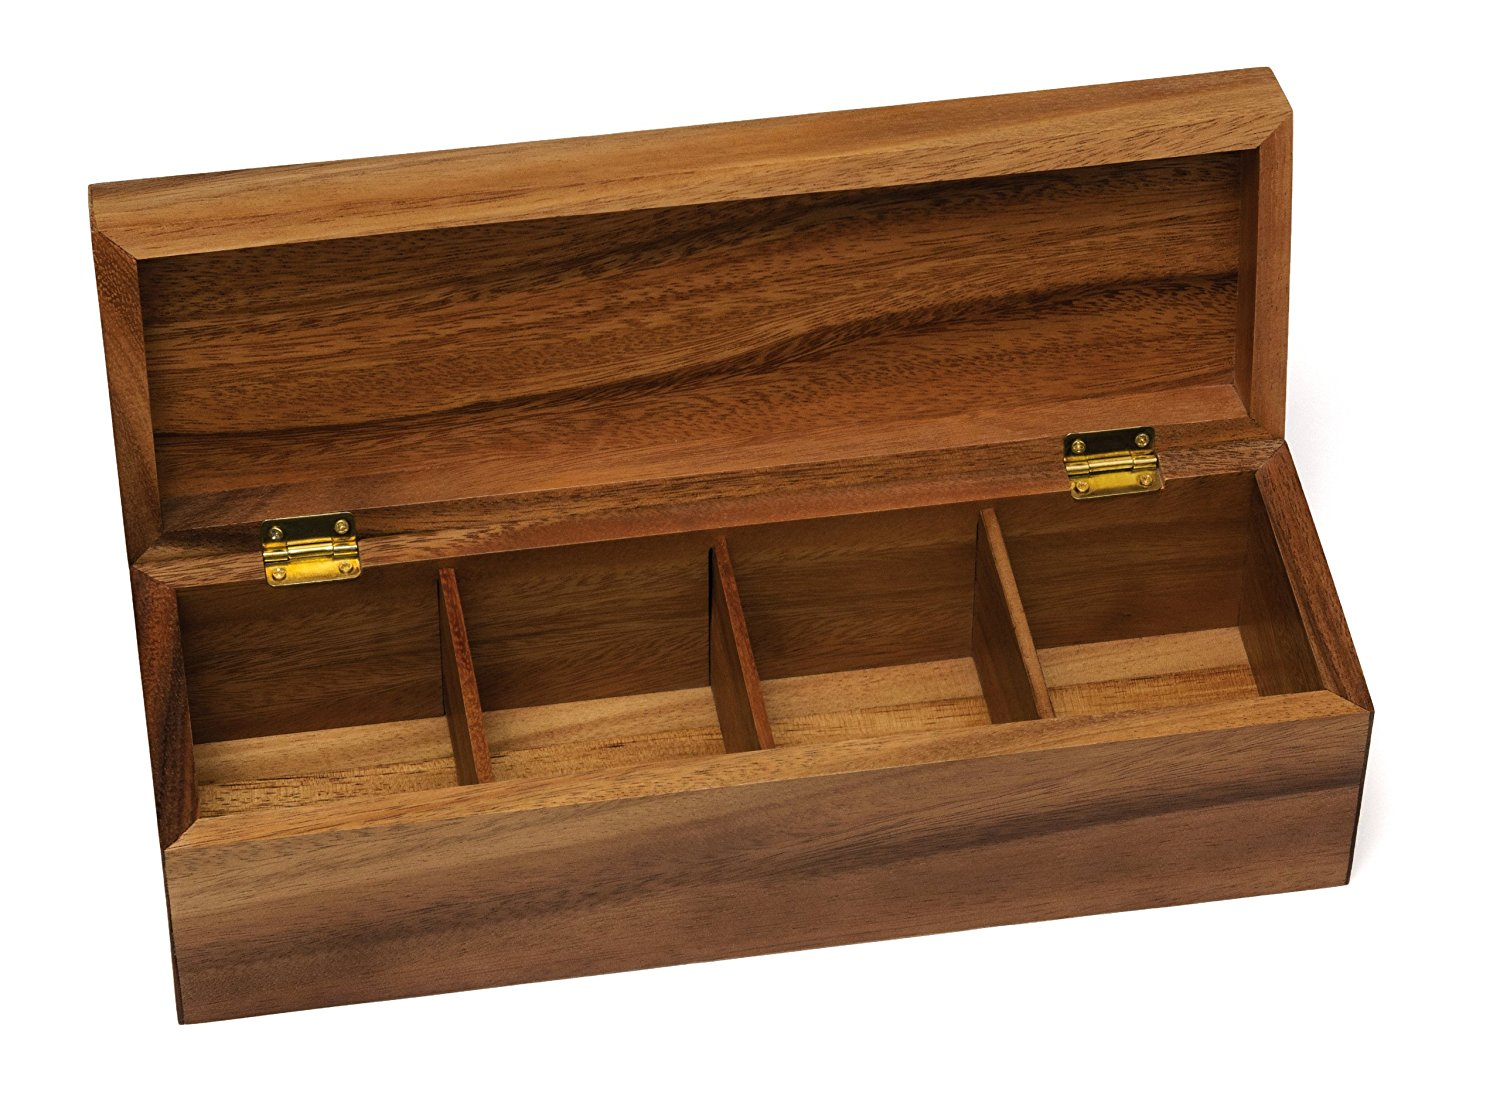 Acacia Wood Coffee Tea Cup Gift Box Coffee Tea Packing Box With 4 Component For High Quality